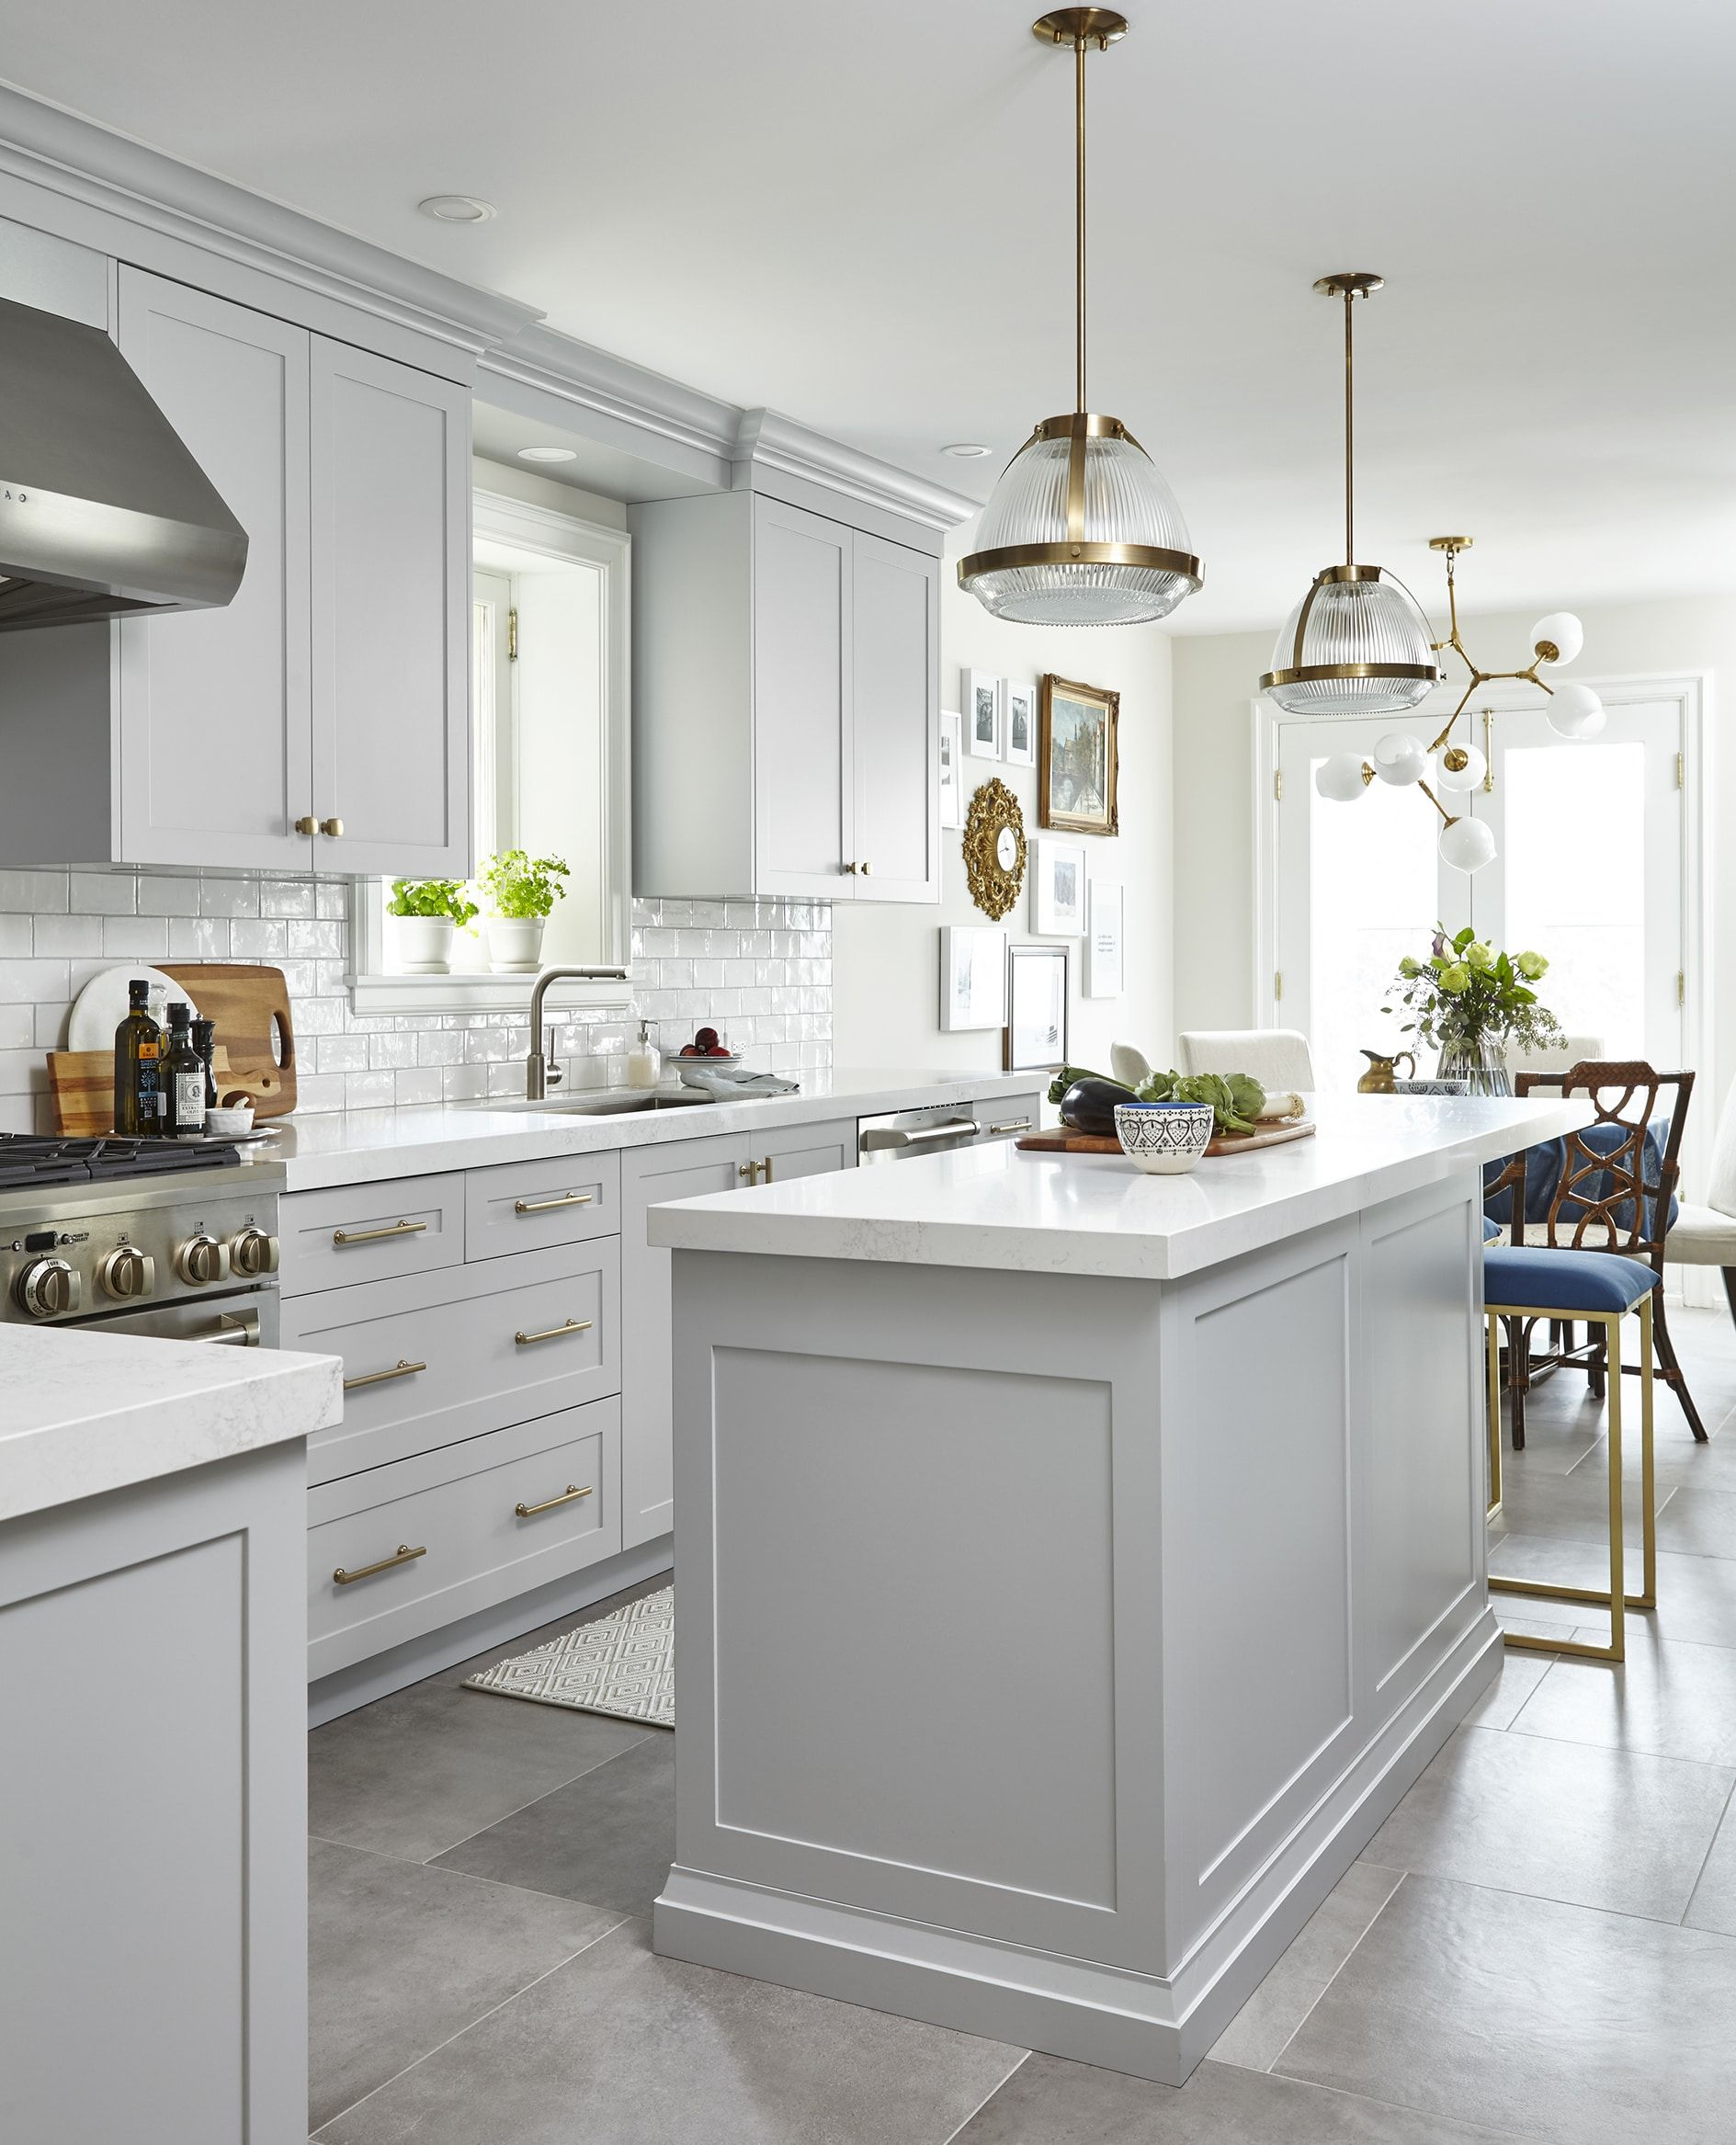 White Kitchen Cabinets With Gray Countertops: Light Grey Kitchen With Celestial Chandelier Over The